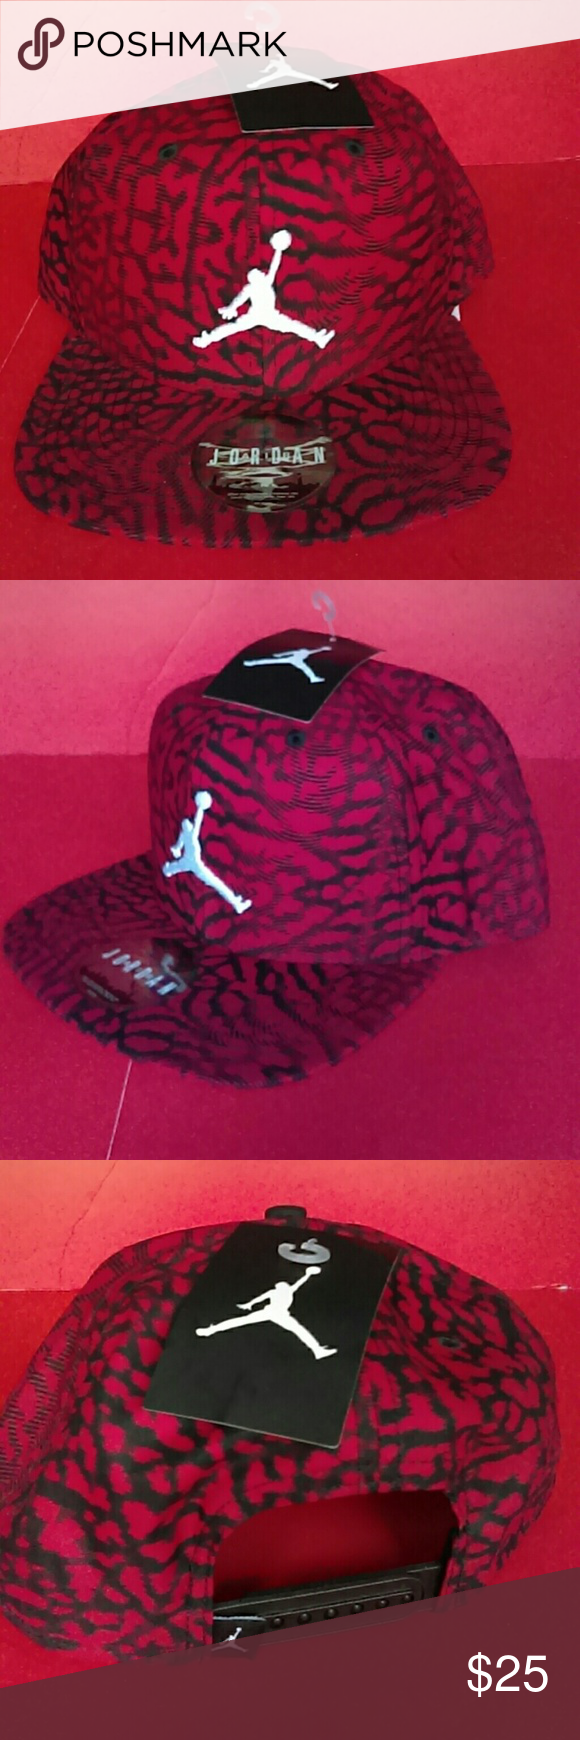 BRAND NEW AIR JORDAN'S HAT 100% AUTHENTIC ADULT UNISEX SNAPBACK REASONABLE  OFFER IS WELCOMED Accessories